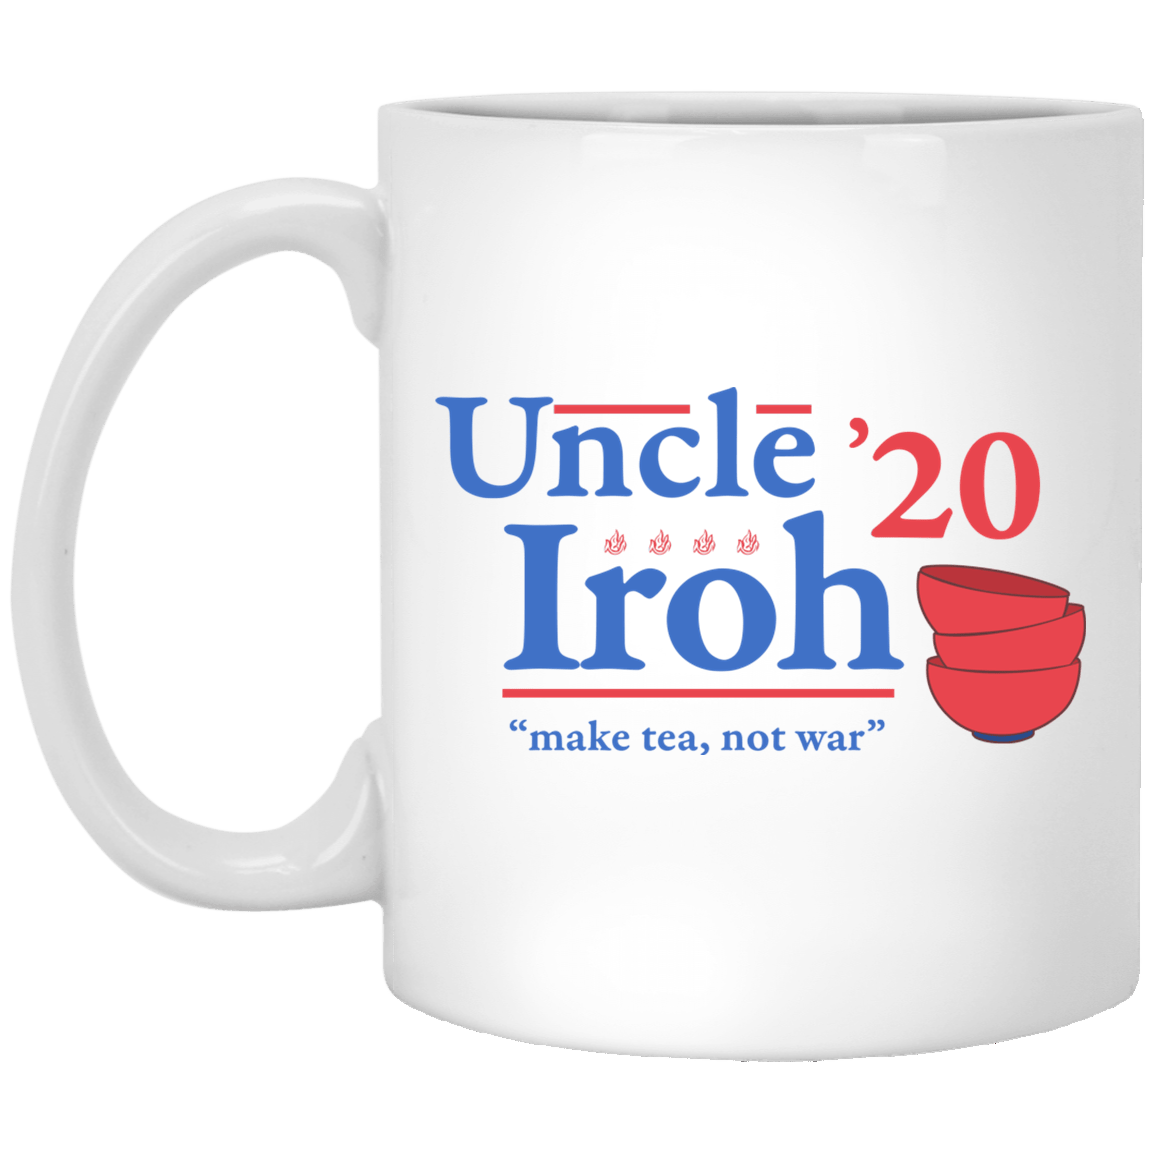 Uncle Iroh 2020 Make Tea Not War Mug 1005-9786-88282892-47417 - Tee Ript